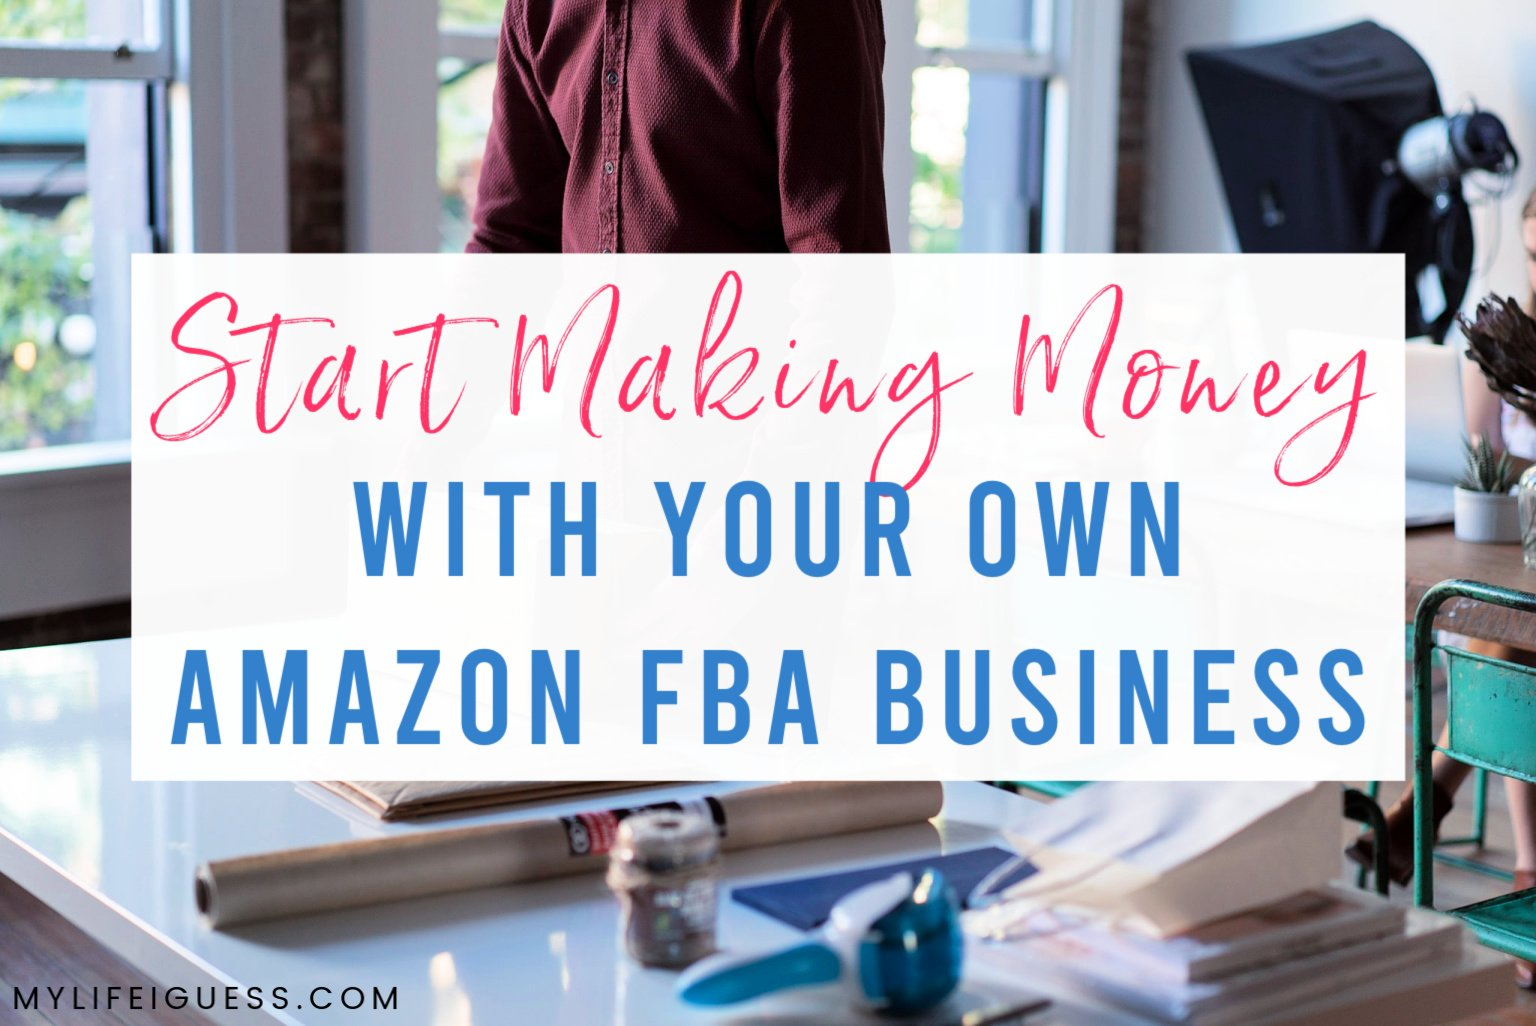 Start Making Money With Your Own Amazon FBA Business